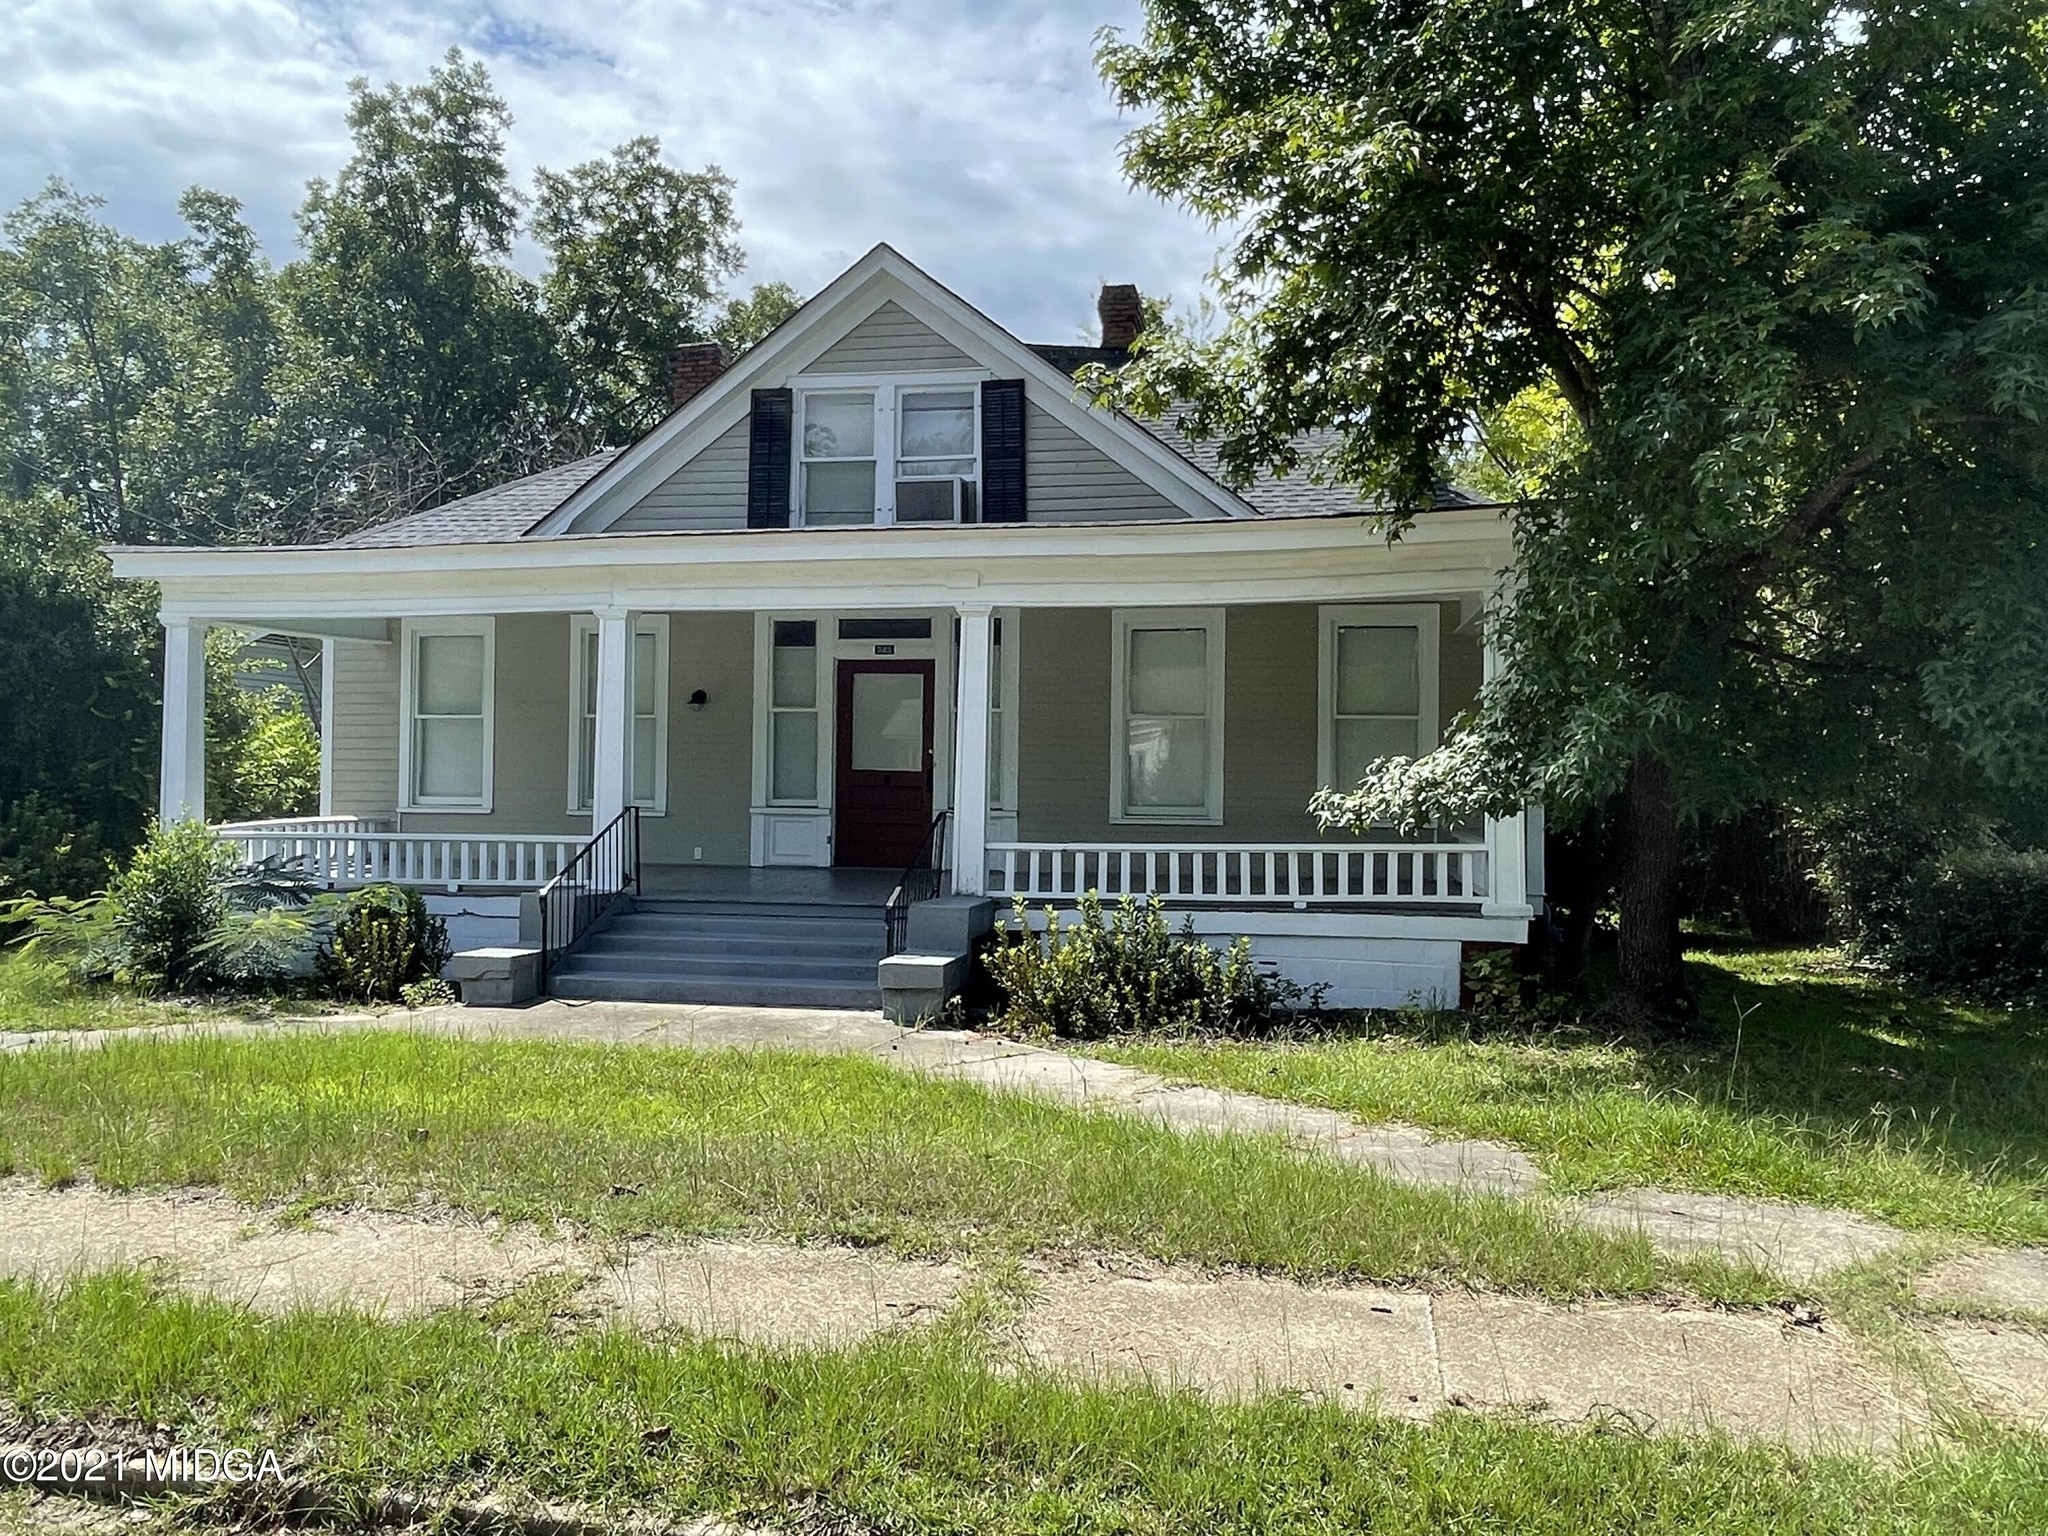 3-Bedroom House In Tennille